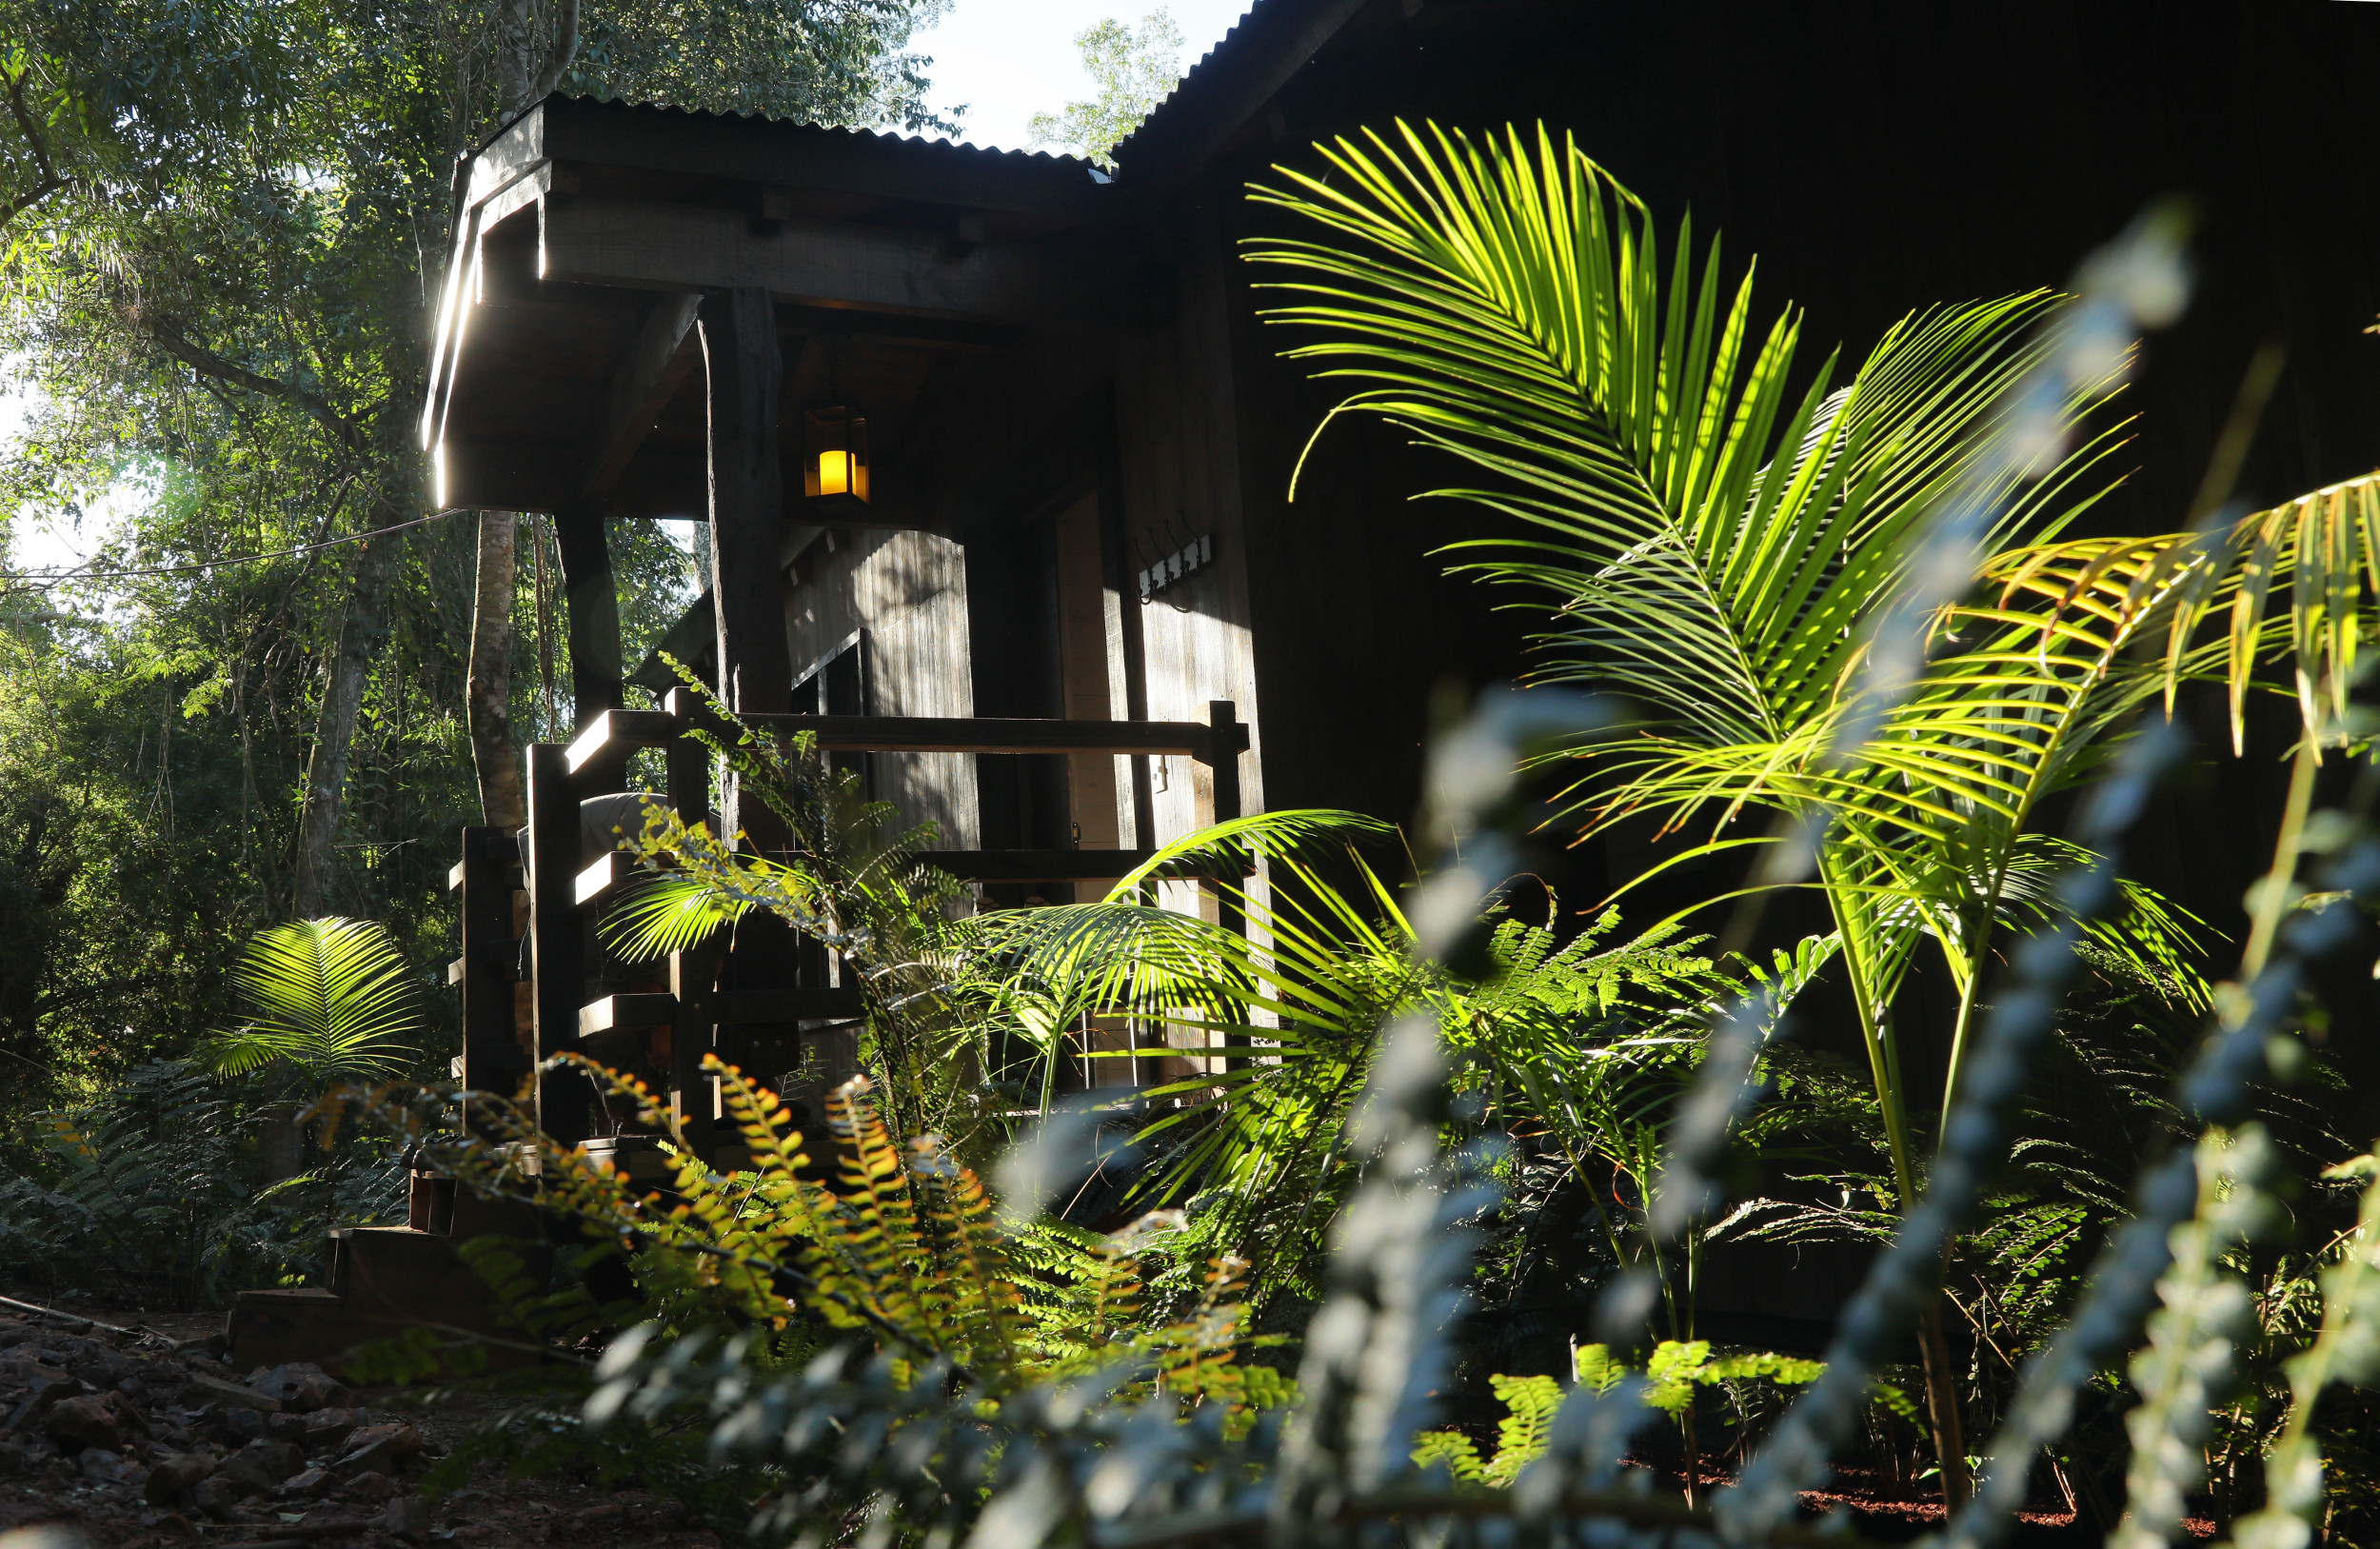 The properties are situated on the banks of the River Iguazú, surrounded by the Atlantic Rainforest.